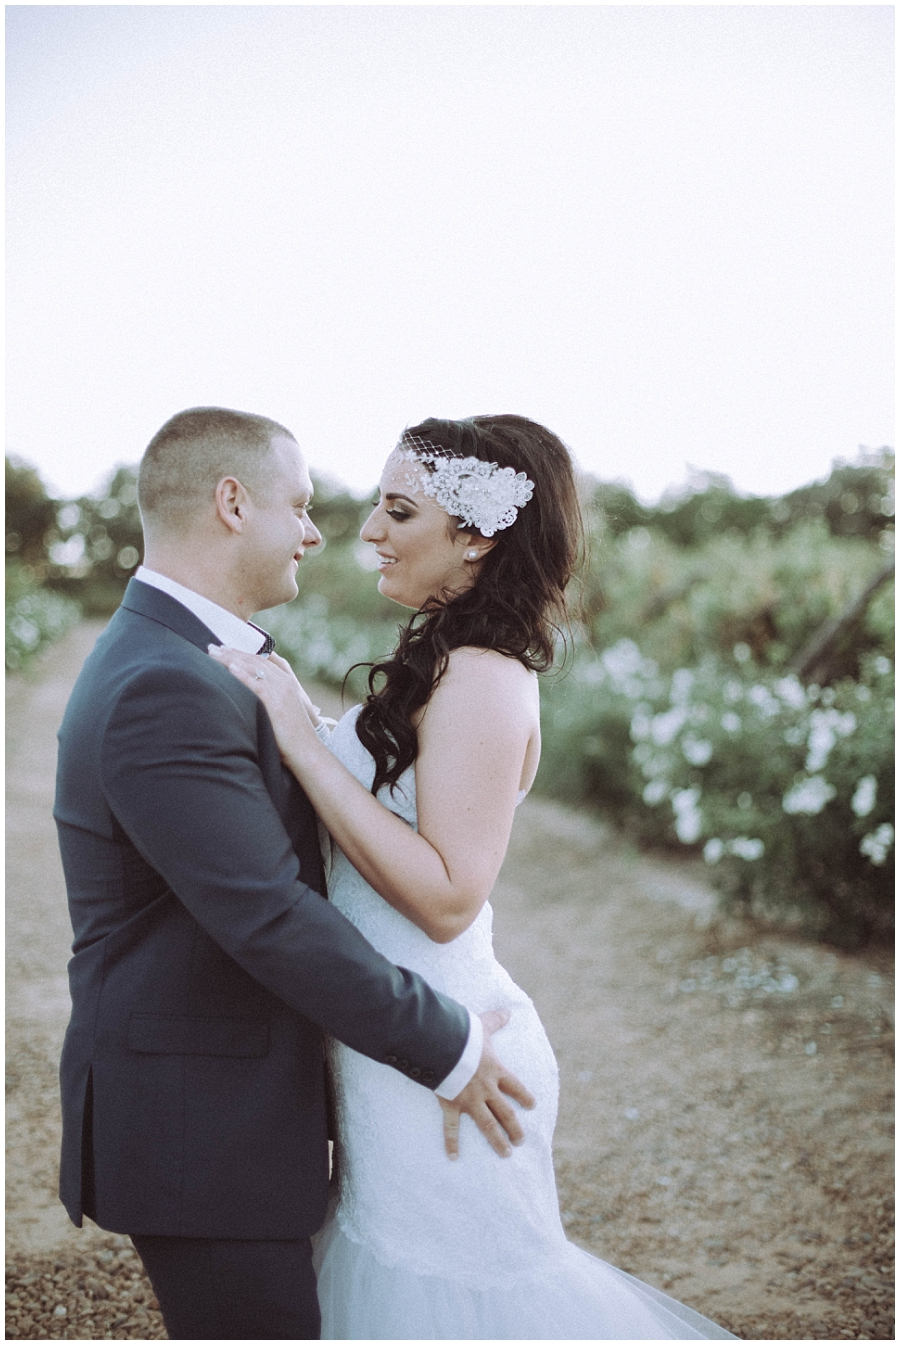 Ronel Kruger Cape Town Wedding and Lifestyle Photographer_3421.jpg